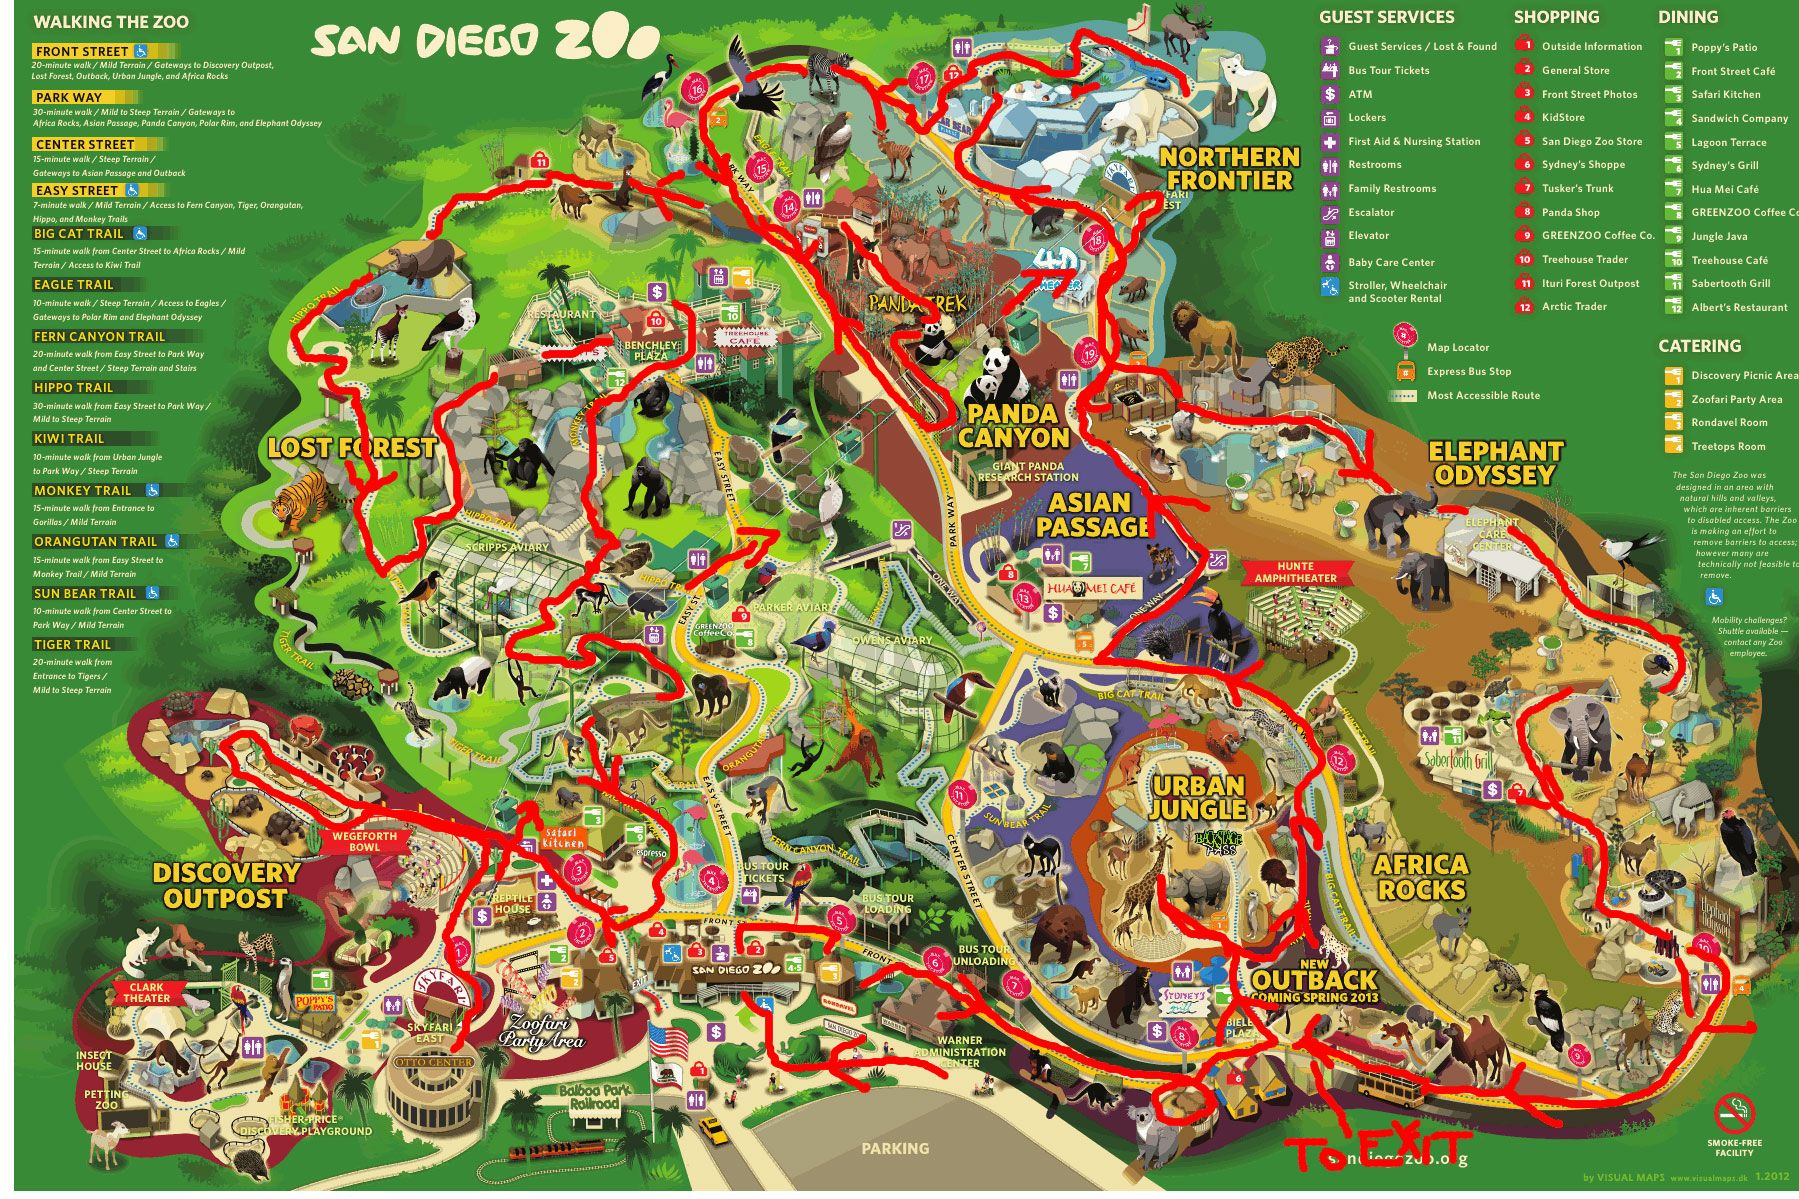 San Diego Zoo Map San Diego Zoo California USA Pinterest San